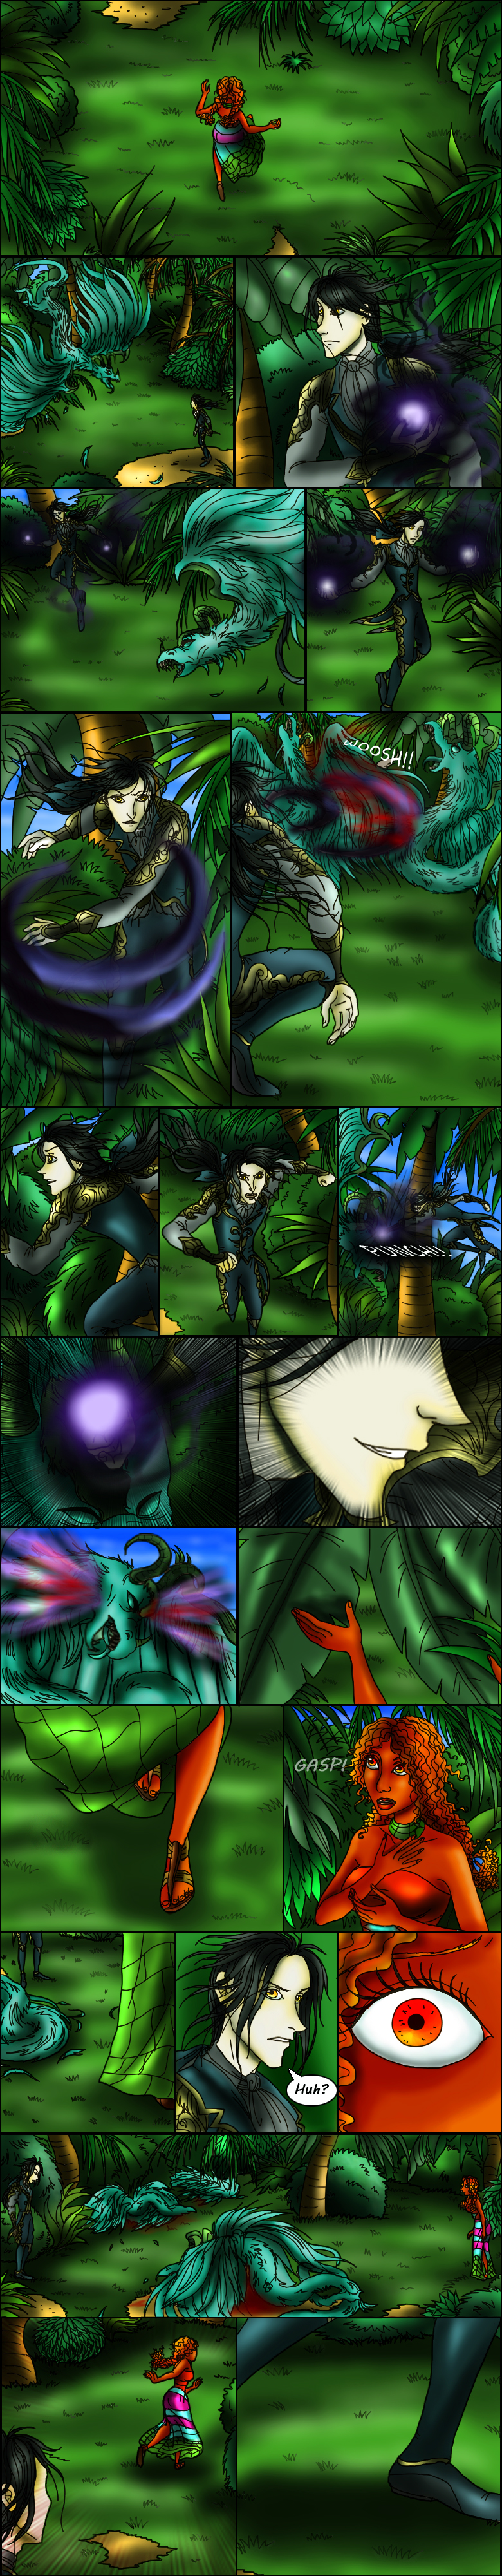 Page 17 – A Trial on the Island part 2